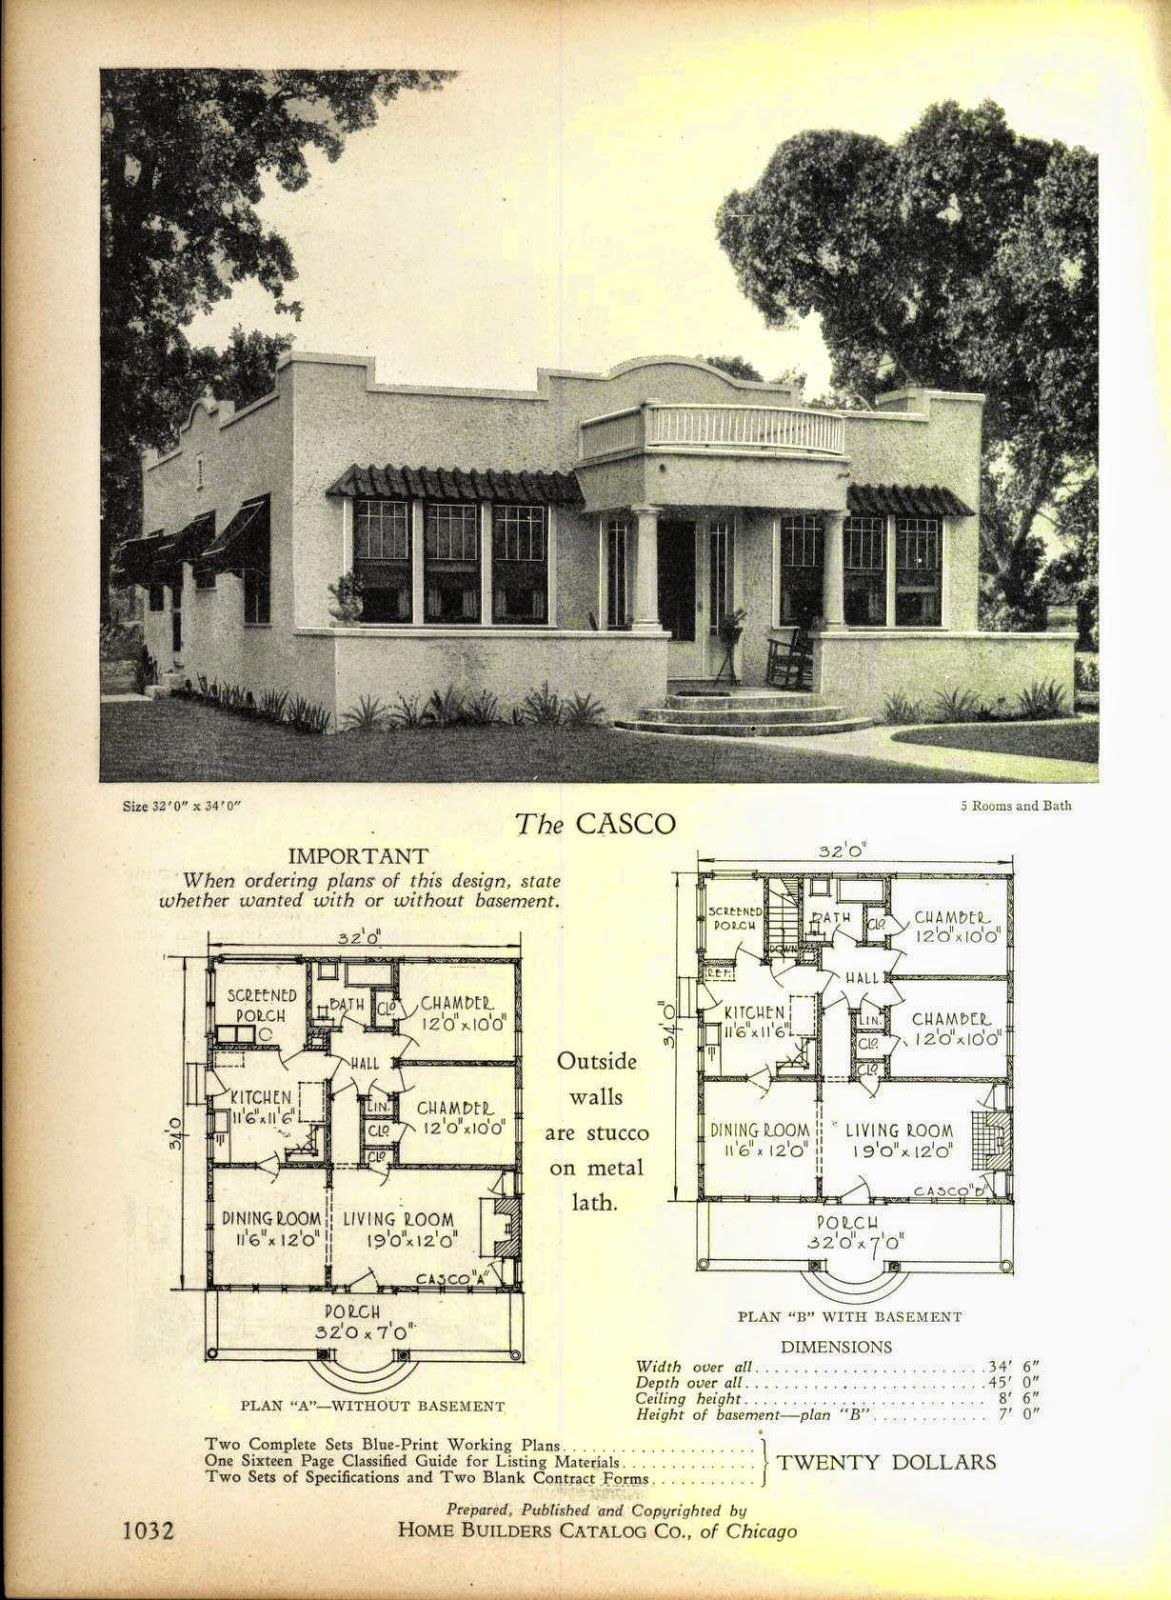 Pin On House Types Spanish Revival Mission Revival Spanish Colonial Spanish Bungalow Pueblo